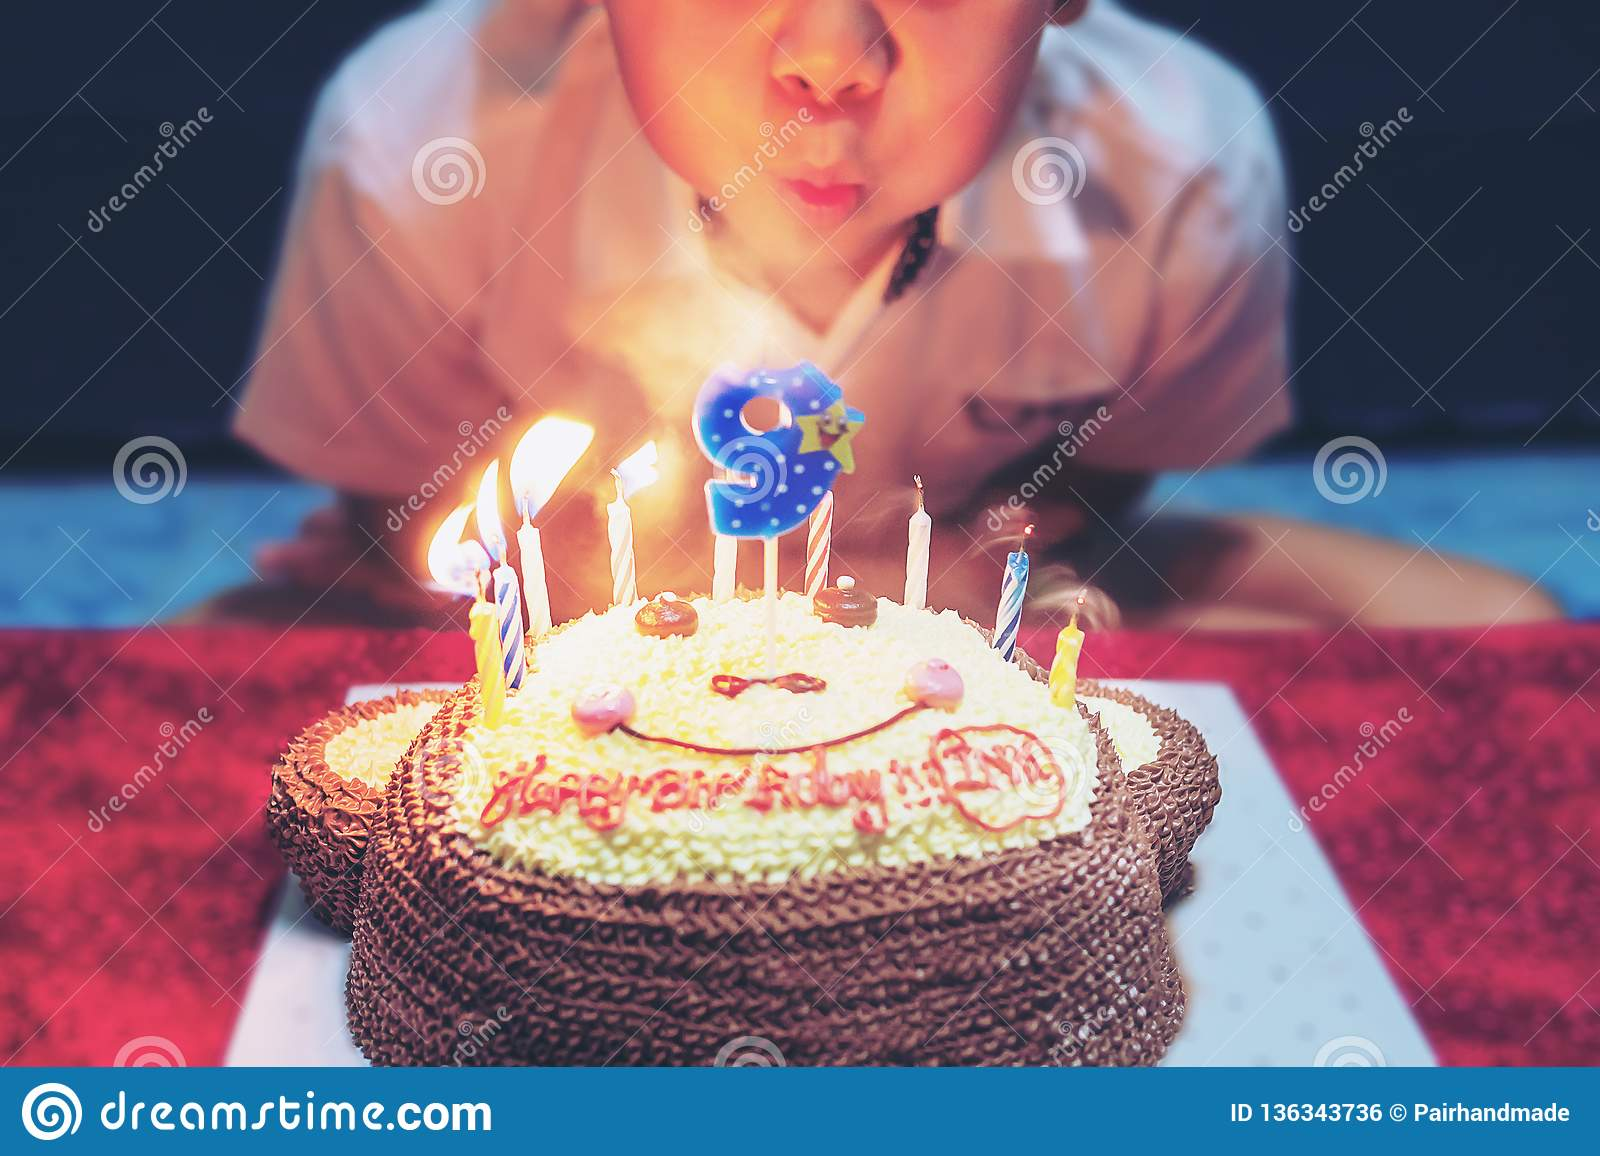 Has Covid19 Ruined Birthday Candles One Expert Thinks So